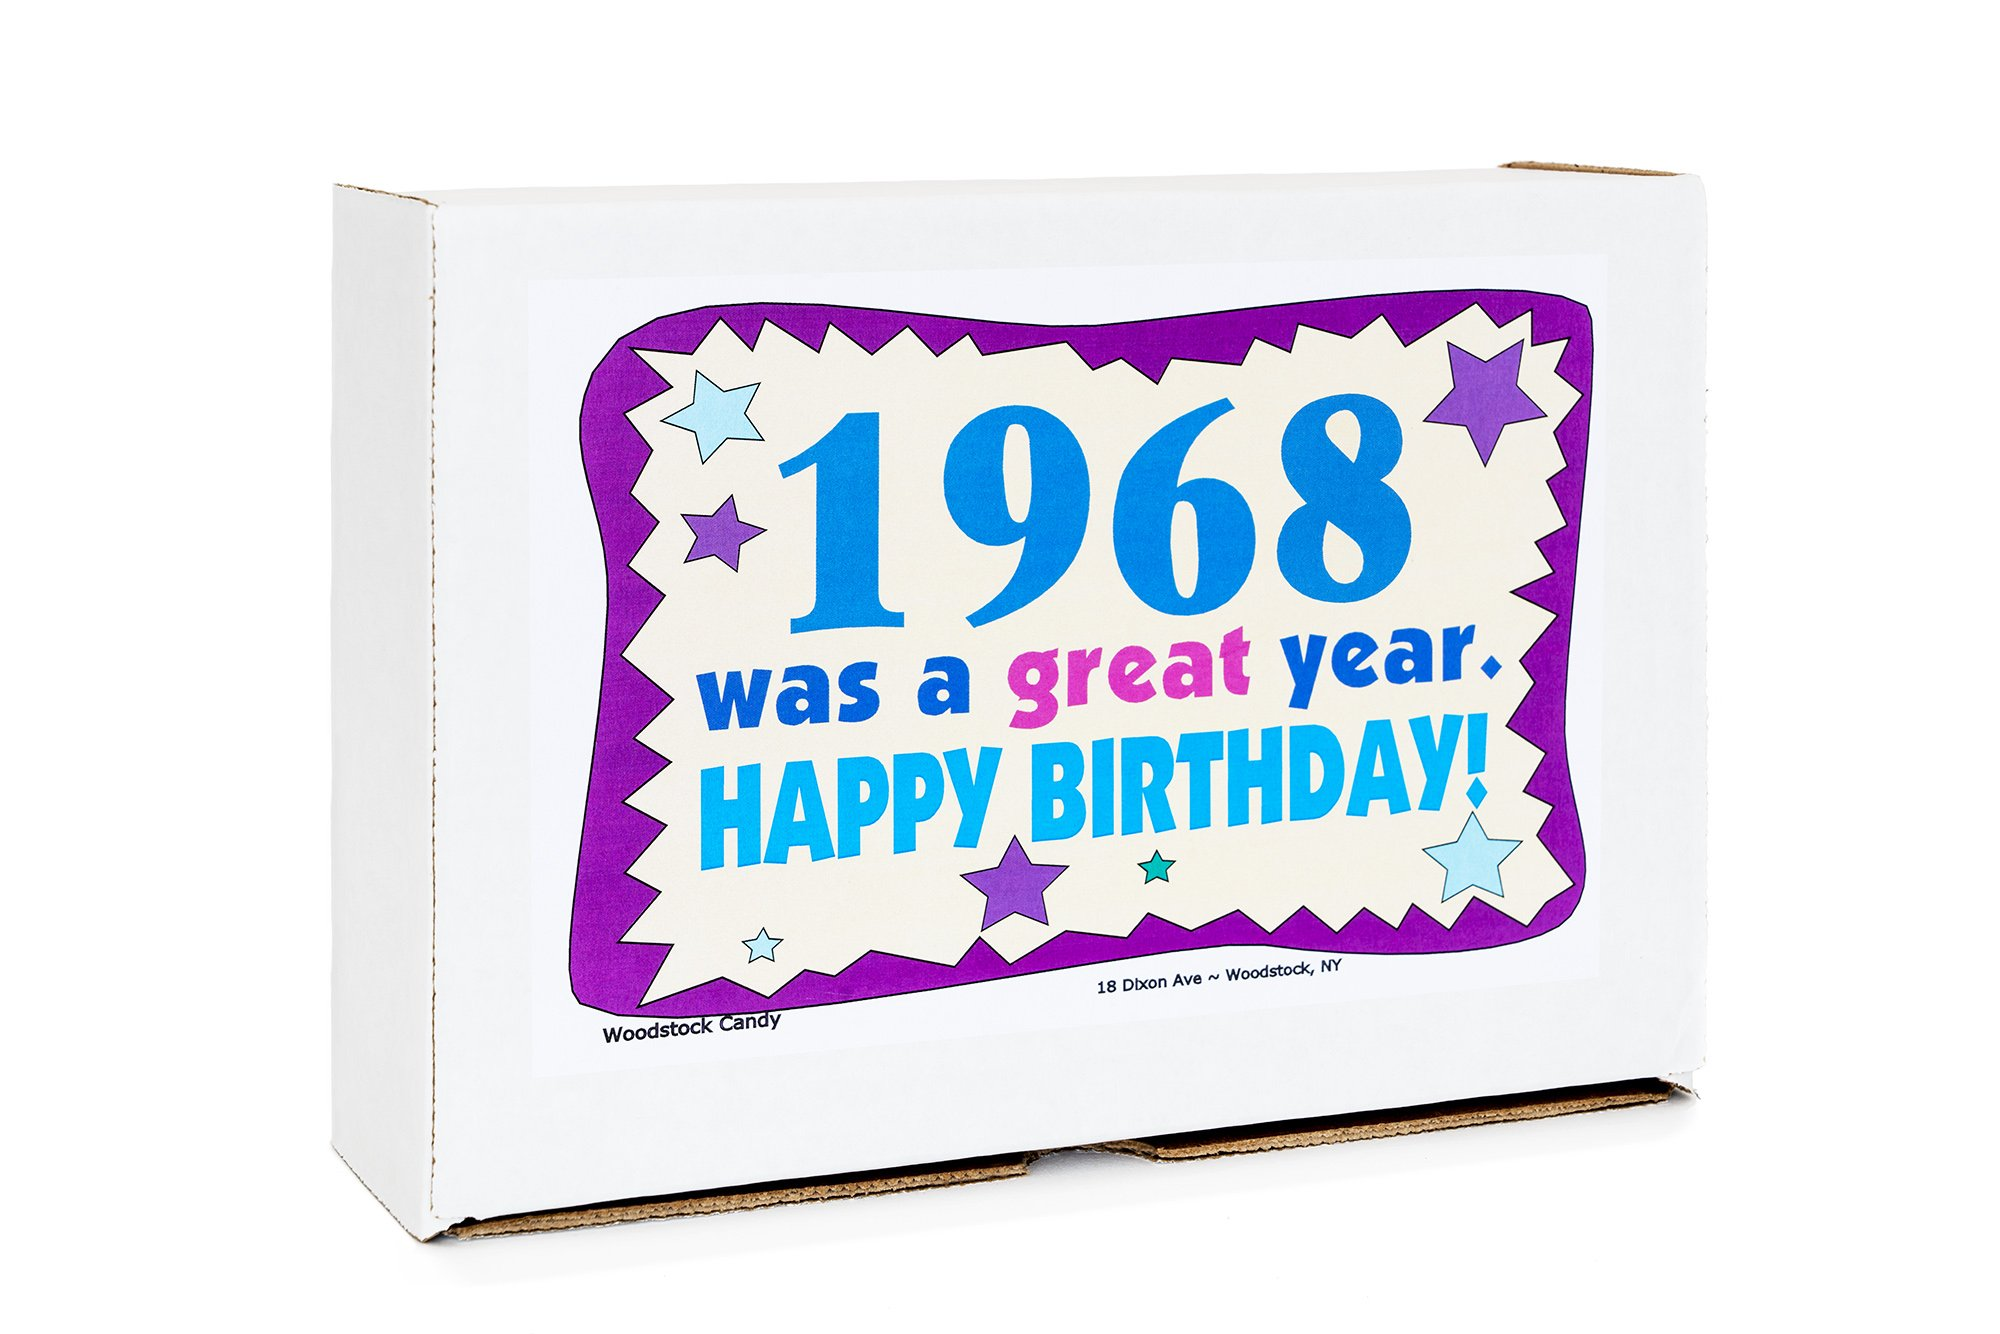 Woodstock Candy 1968 50th Birthday Gift Box Nostalgic Retro Mix From Childhood For 50 Year Old Man Or Woman Born Jr Chocolate Gifts